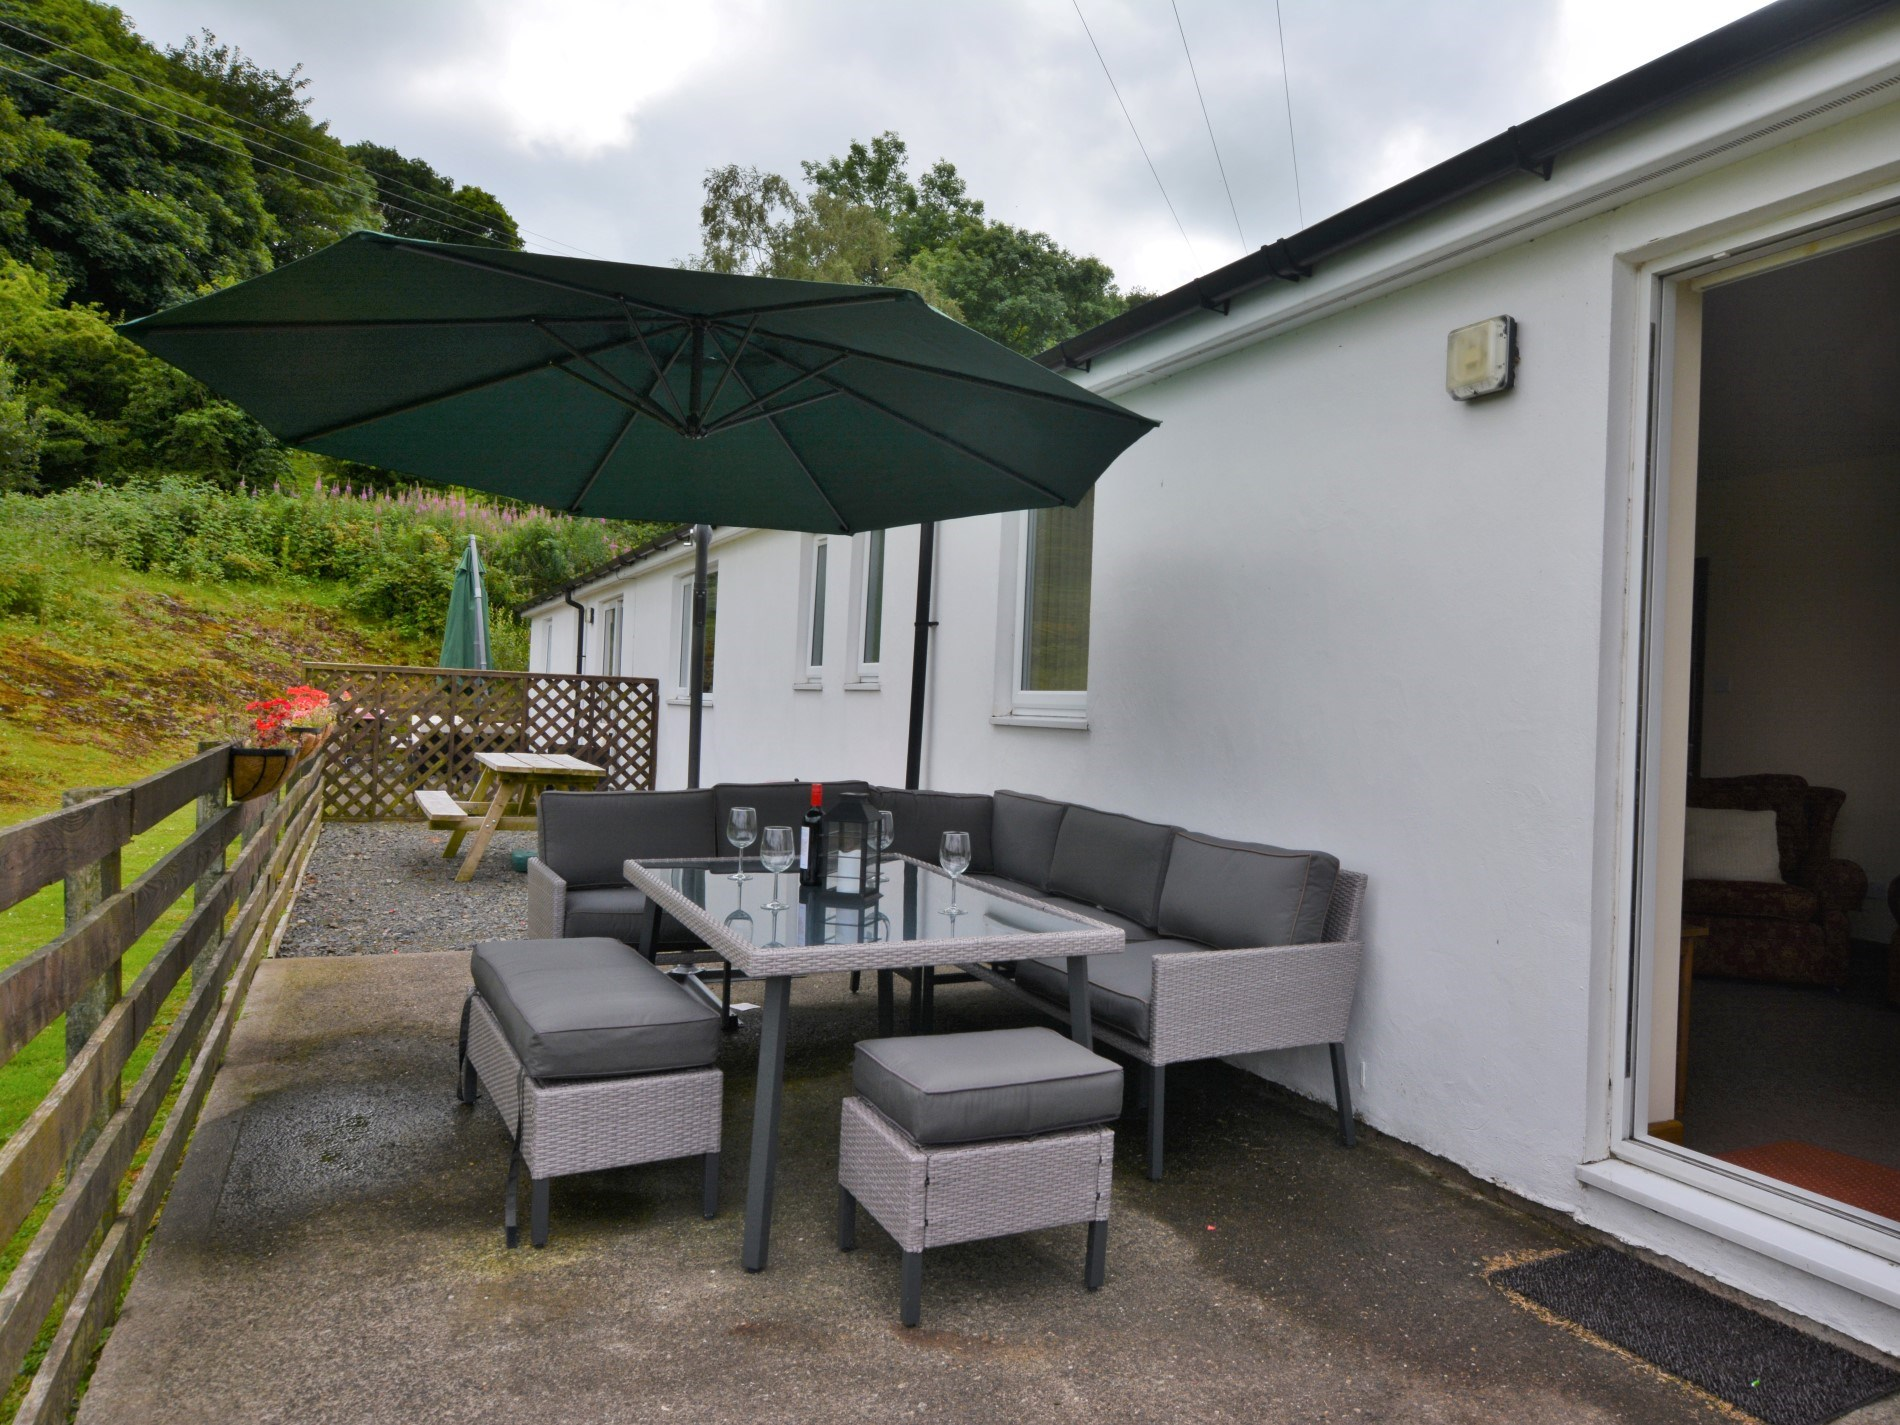 3 Bedroom Cottage in Dumfries and Galloway, Ayrshire and Dumfries & Galloway